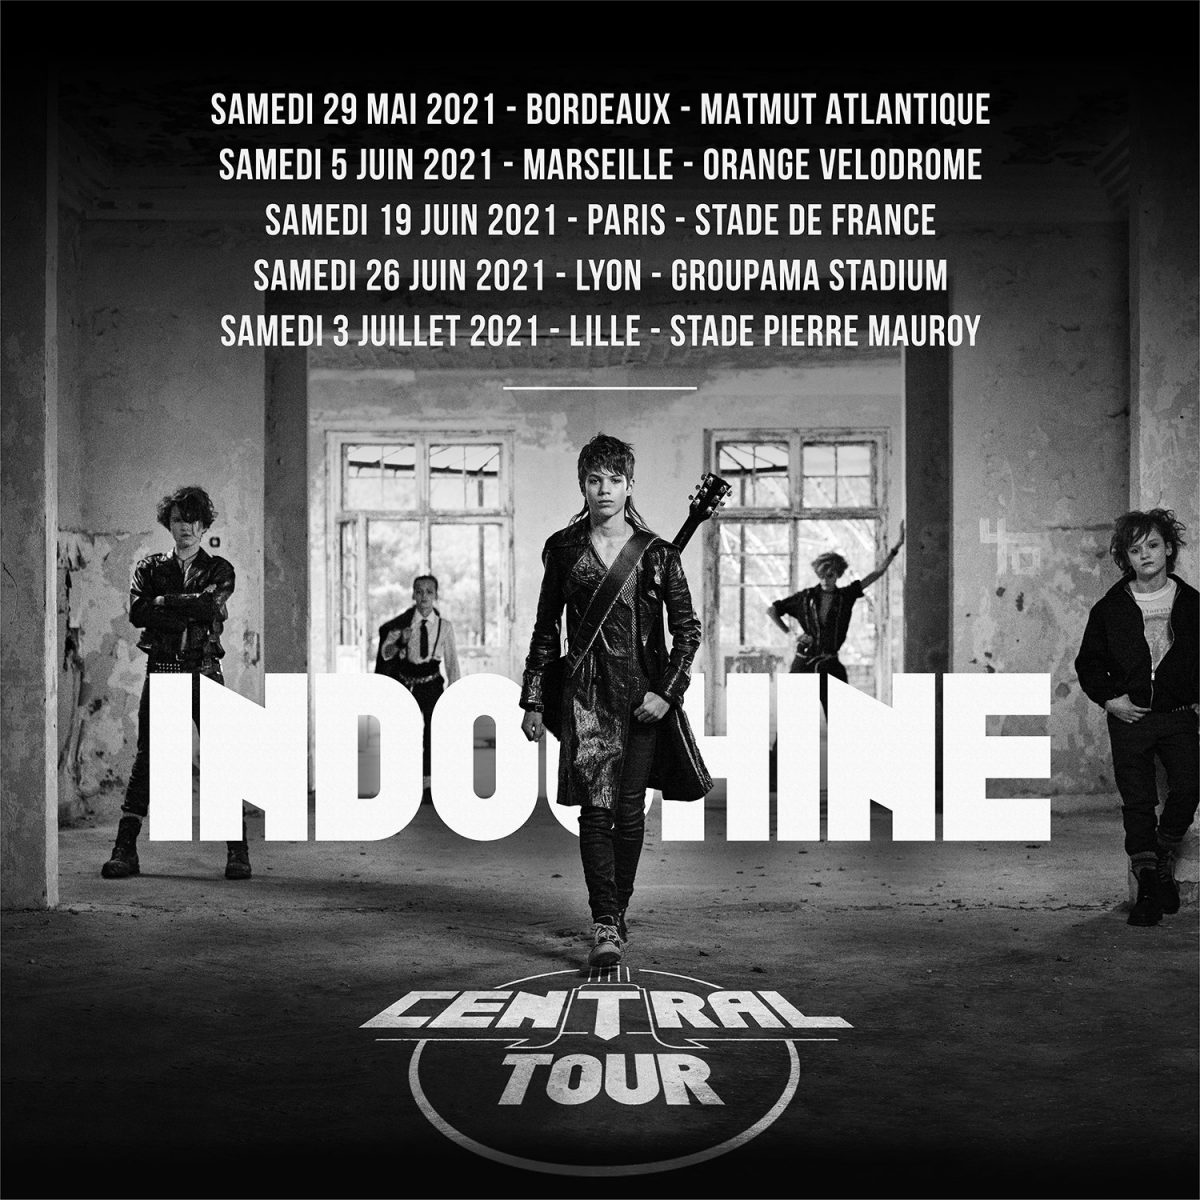 Indochine - Central Tour